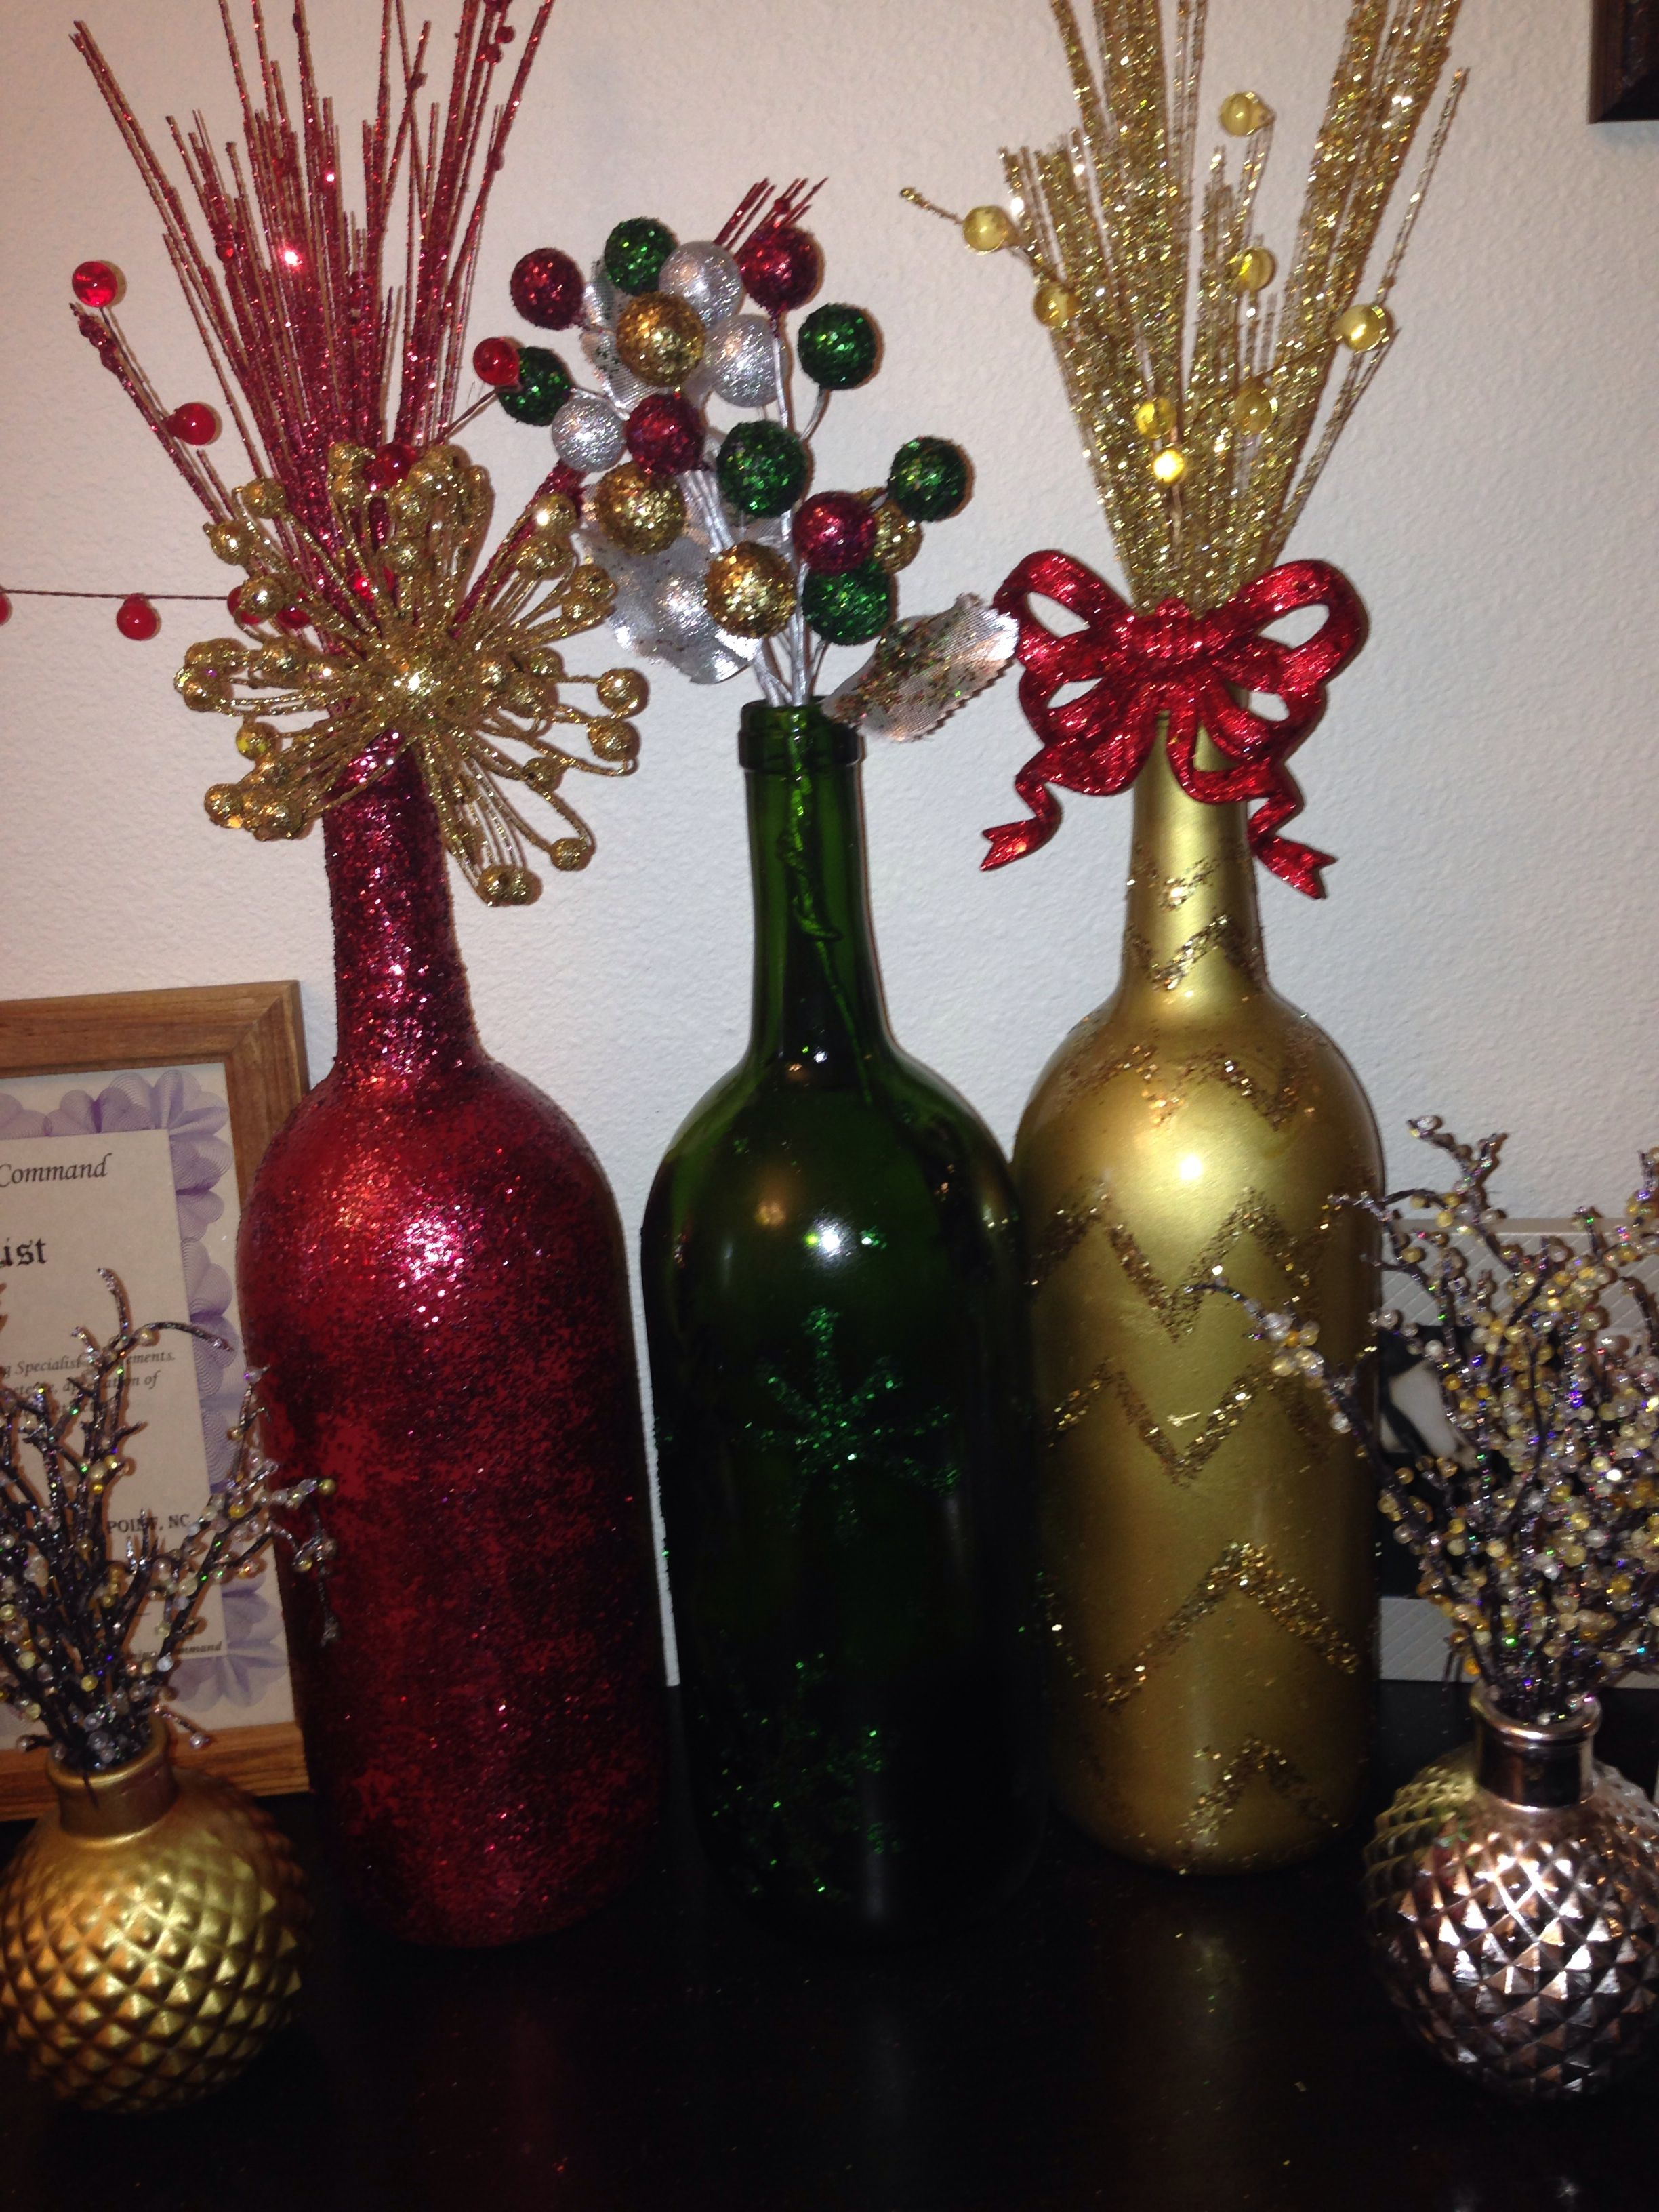 Repurpose wine bottles into christmas vase decor maybe easy on repurpose wine bottles into christmas vase decor maybe easy on the color and more rustic reviewsmspy